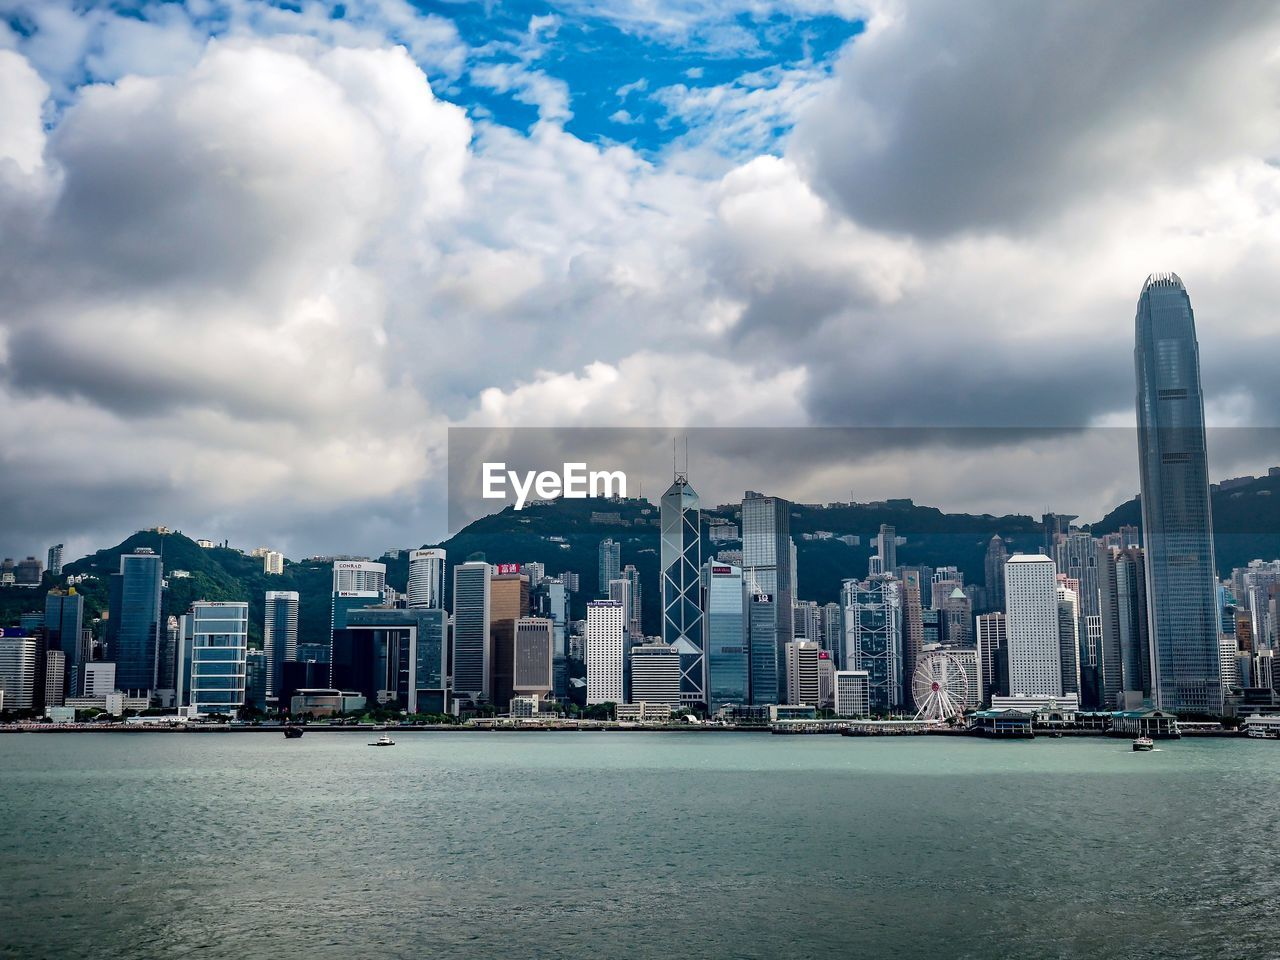 architecture, building exterior, built structure, cloud - sky, building, water, sky, city, waterfront, office building exterior, skyscraper, modern, nature, residential district, cityscape, landscape, sea, urban skyline, tall - high, no people, outdoors, financial district, bay, spire